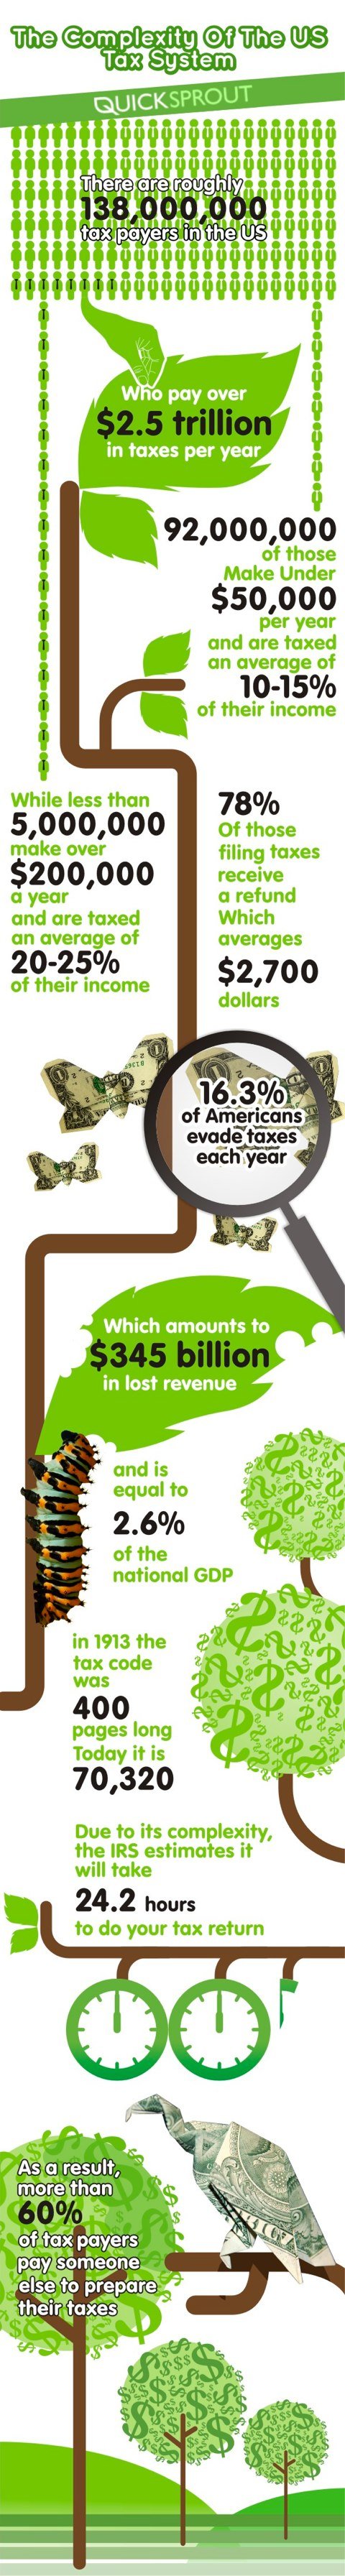 tax system infographic